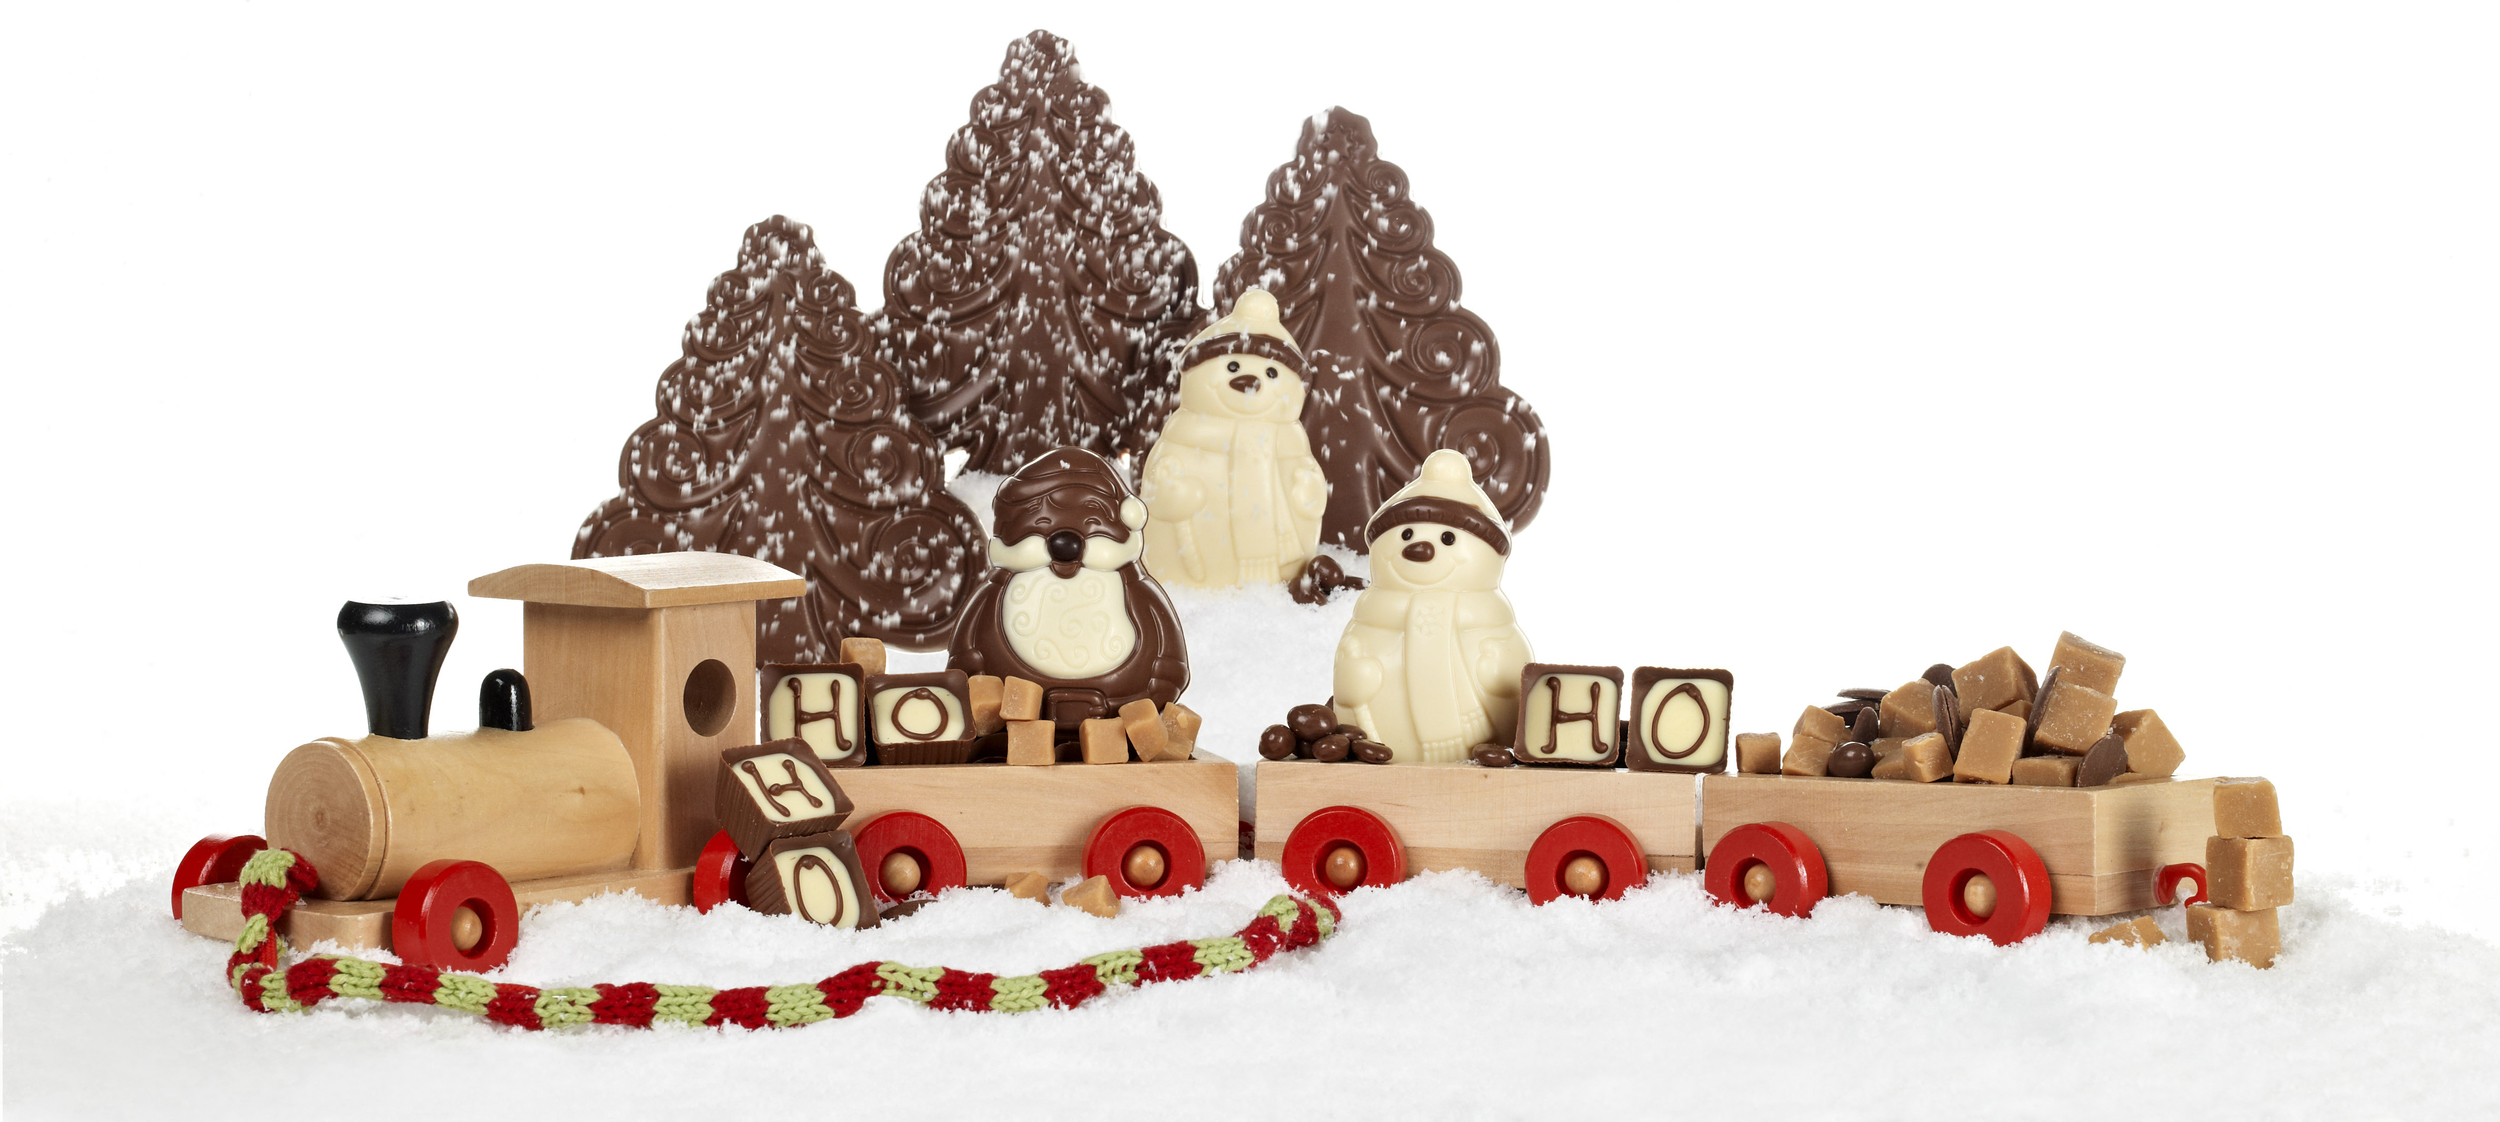 10. Thorntons Christmas Models with Train with Snow by Interior Stylist Joanna Thornhill.jpg